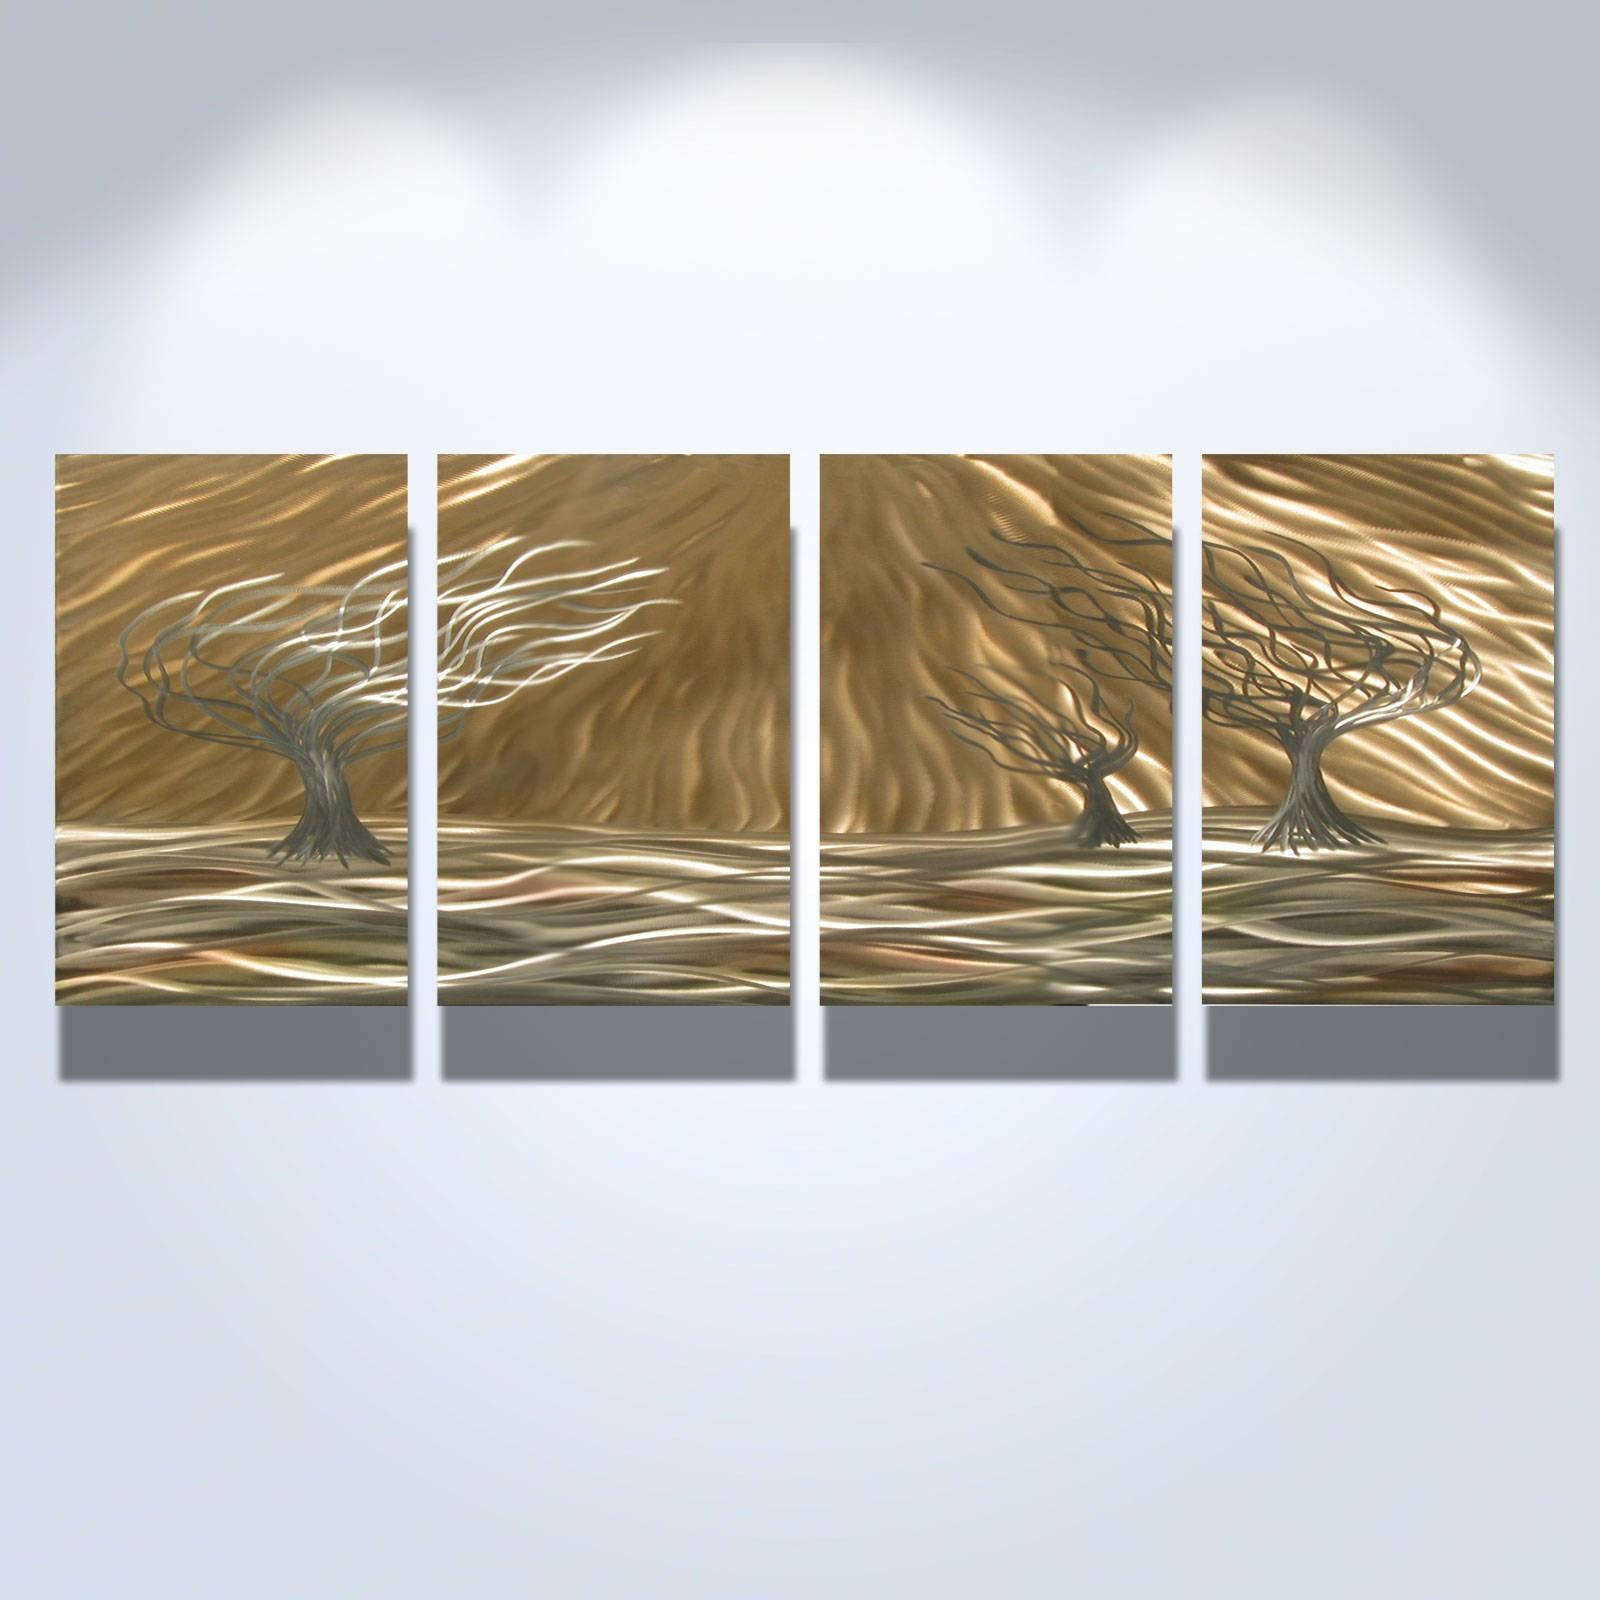 3 Trees 4 Panel – Abstract Metal Wall Art Contemporary Modern Inside Most Recently Released Contemporary Metal Wall Art (View 1 of 20)